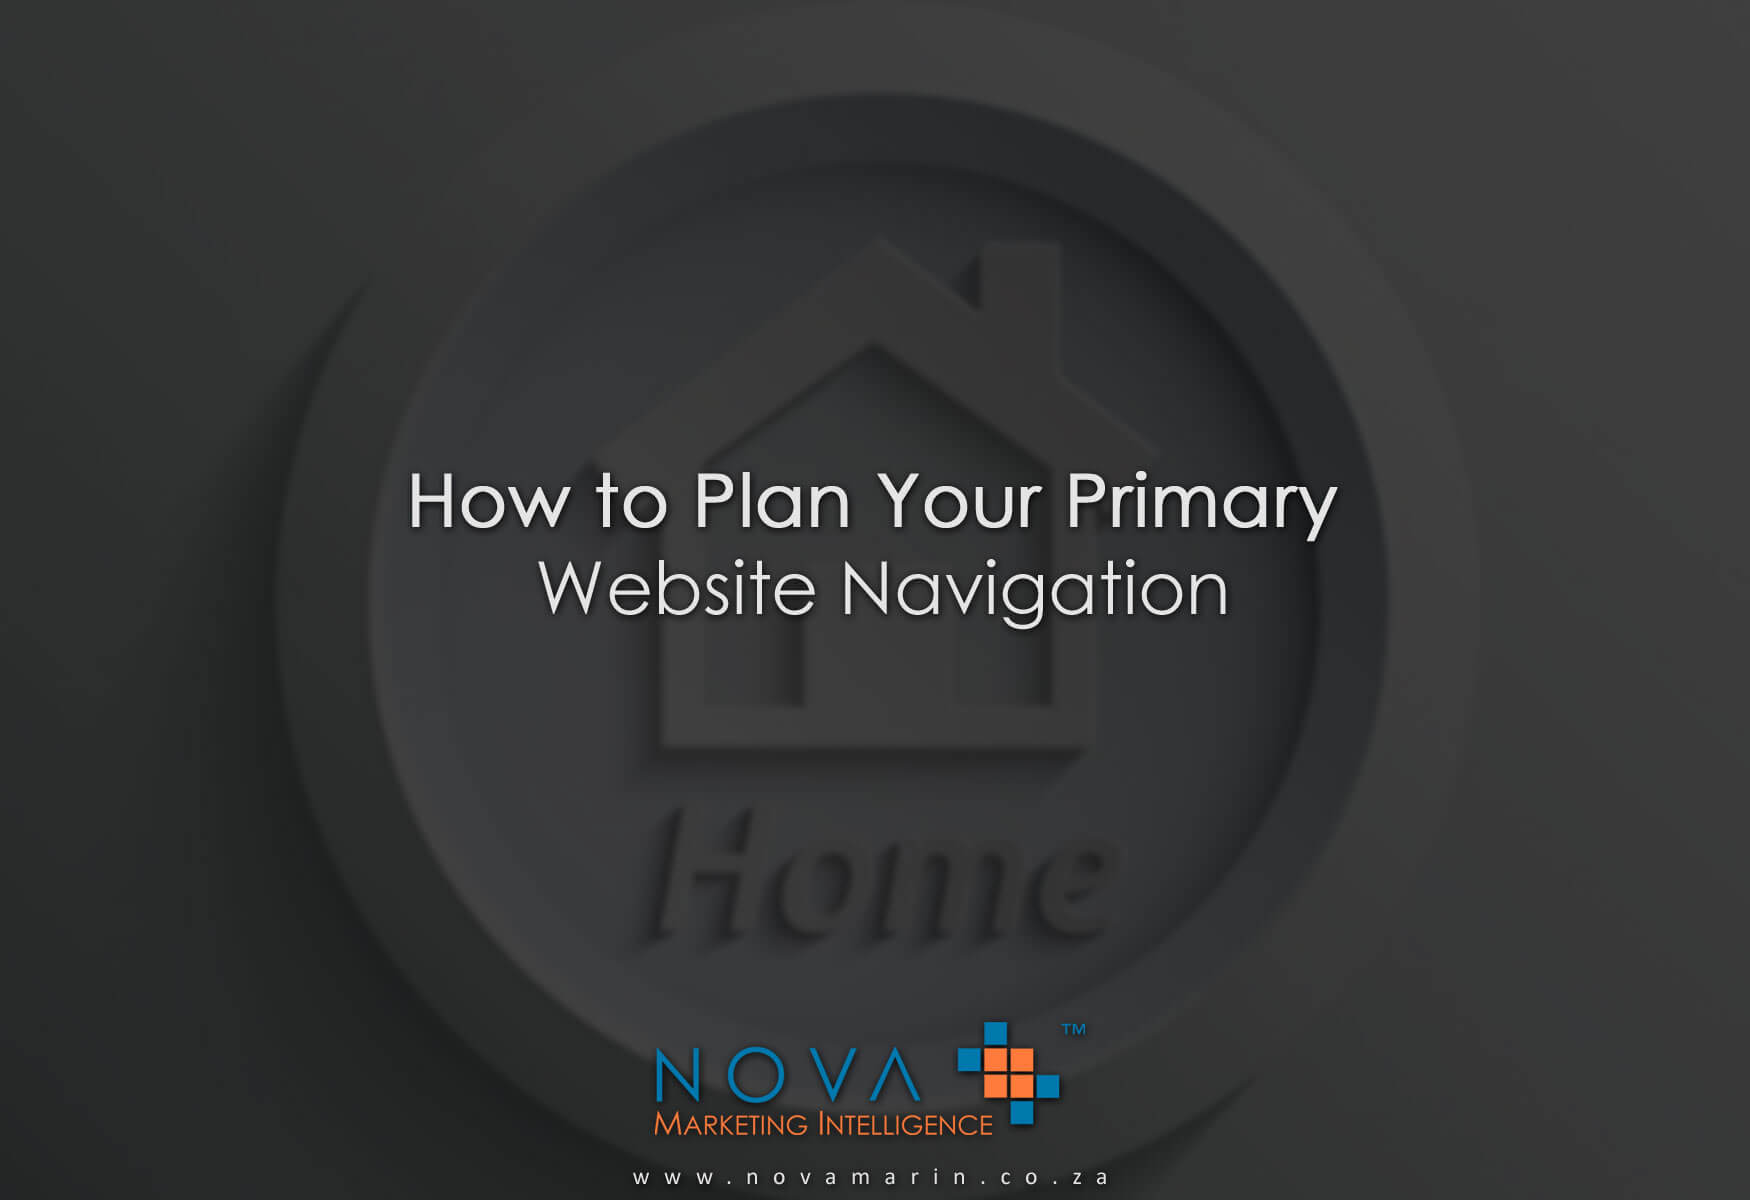 How to Plan Your Primary Website Navigation